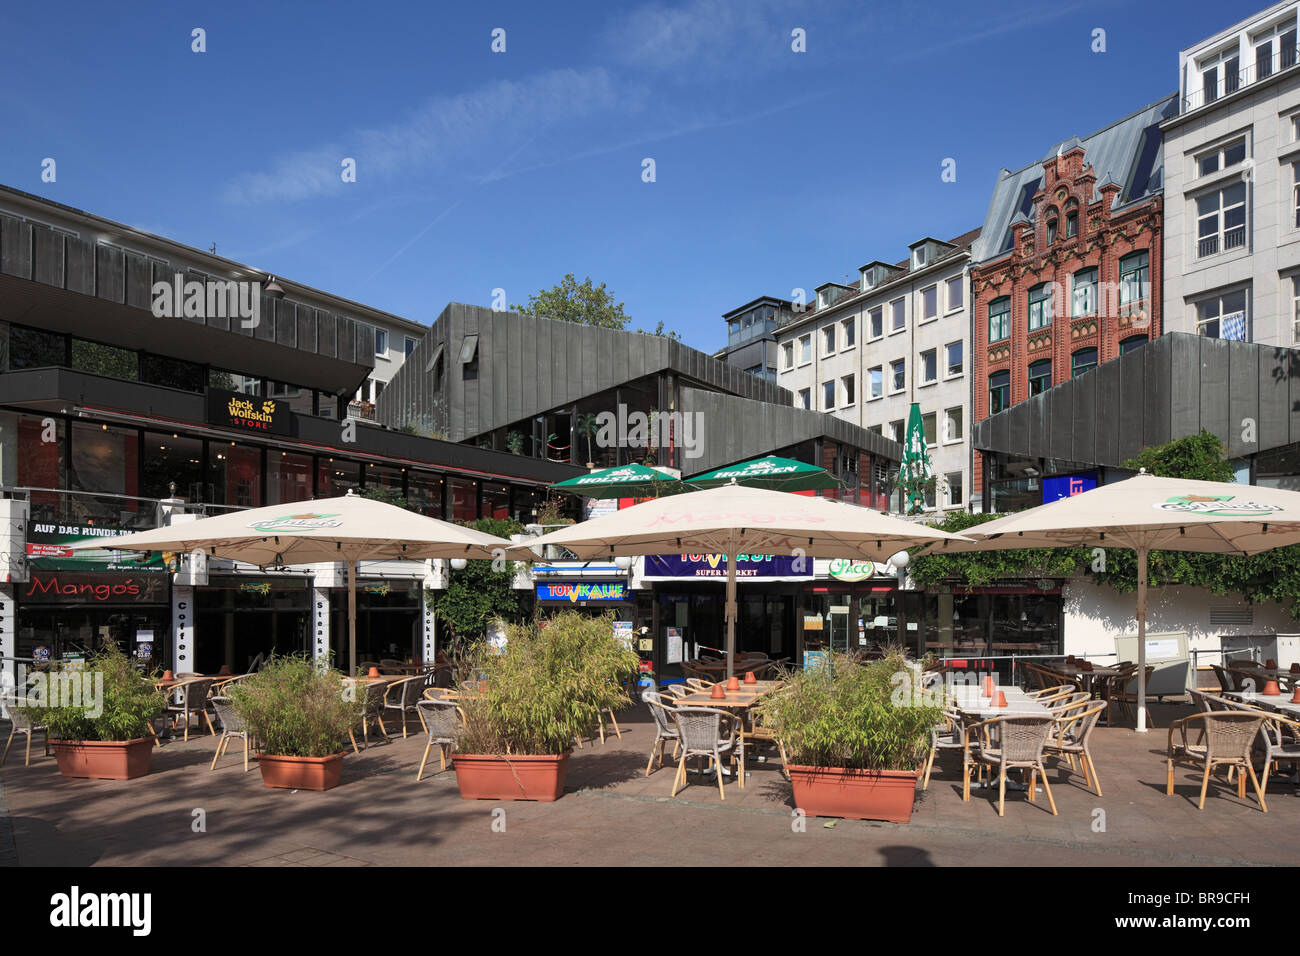 downtown kiel stockfotos downtown kiel bilder alamy. Black Bedroom Furniture Sets. Home Design Ideas